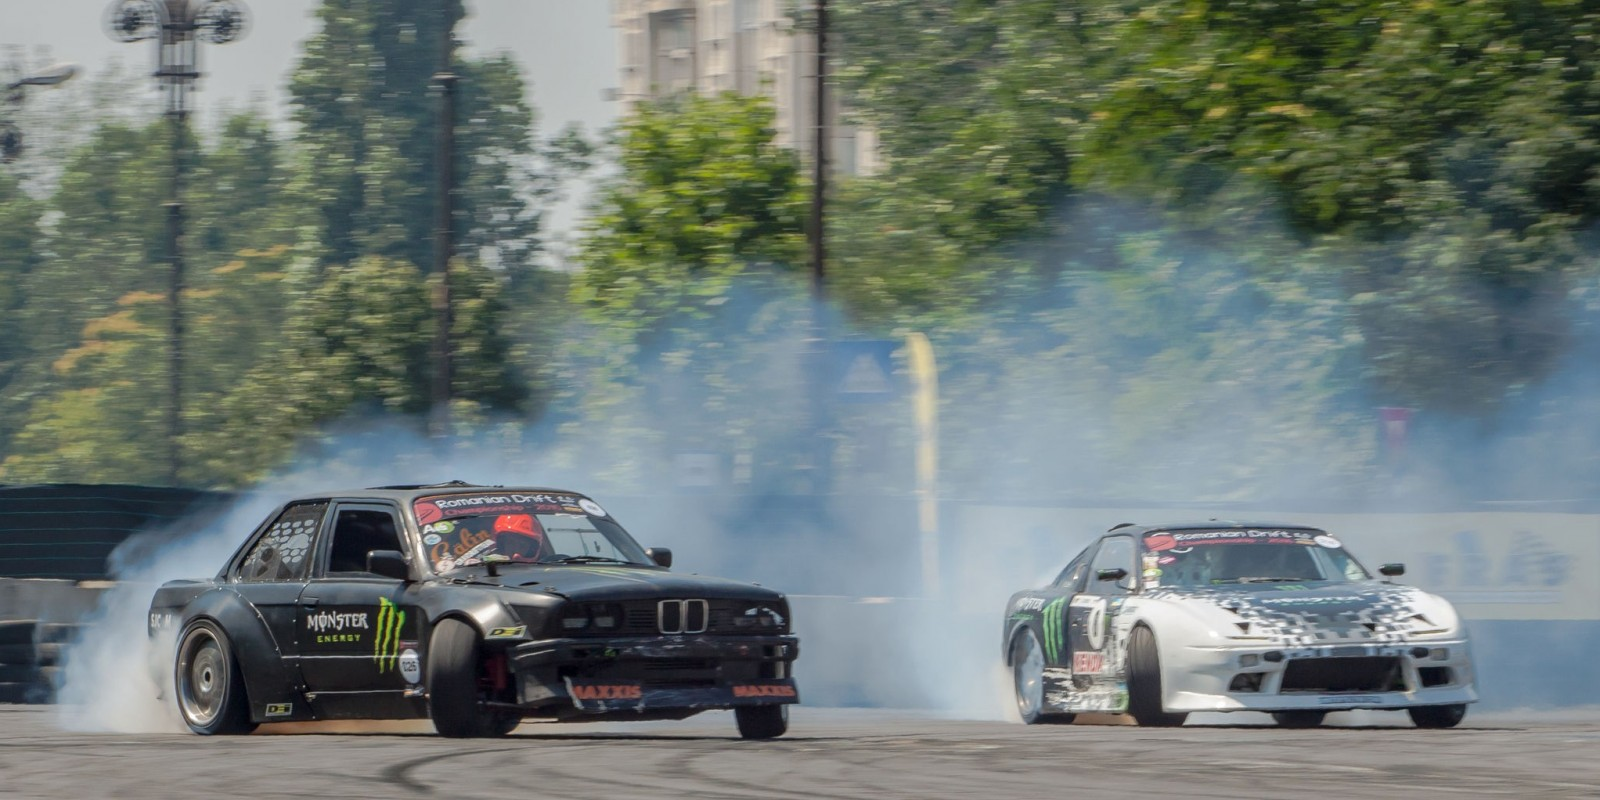 Event photos from the second stage of the Romanian Drift Championship. Photos were taken by my TL - Victor Carapcea - Monster Energy Employee. I wanted to tag another Monster Energy Athlete - TALENT -  that was present, named Dimitriy Illyuk - from Ucrain